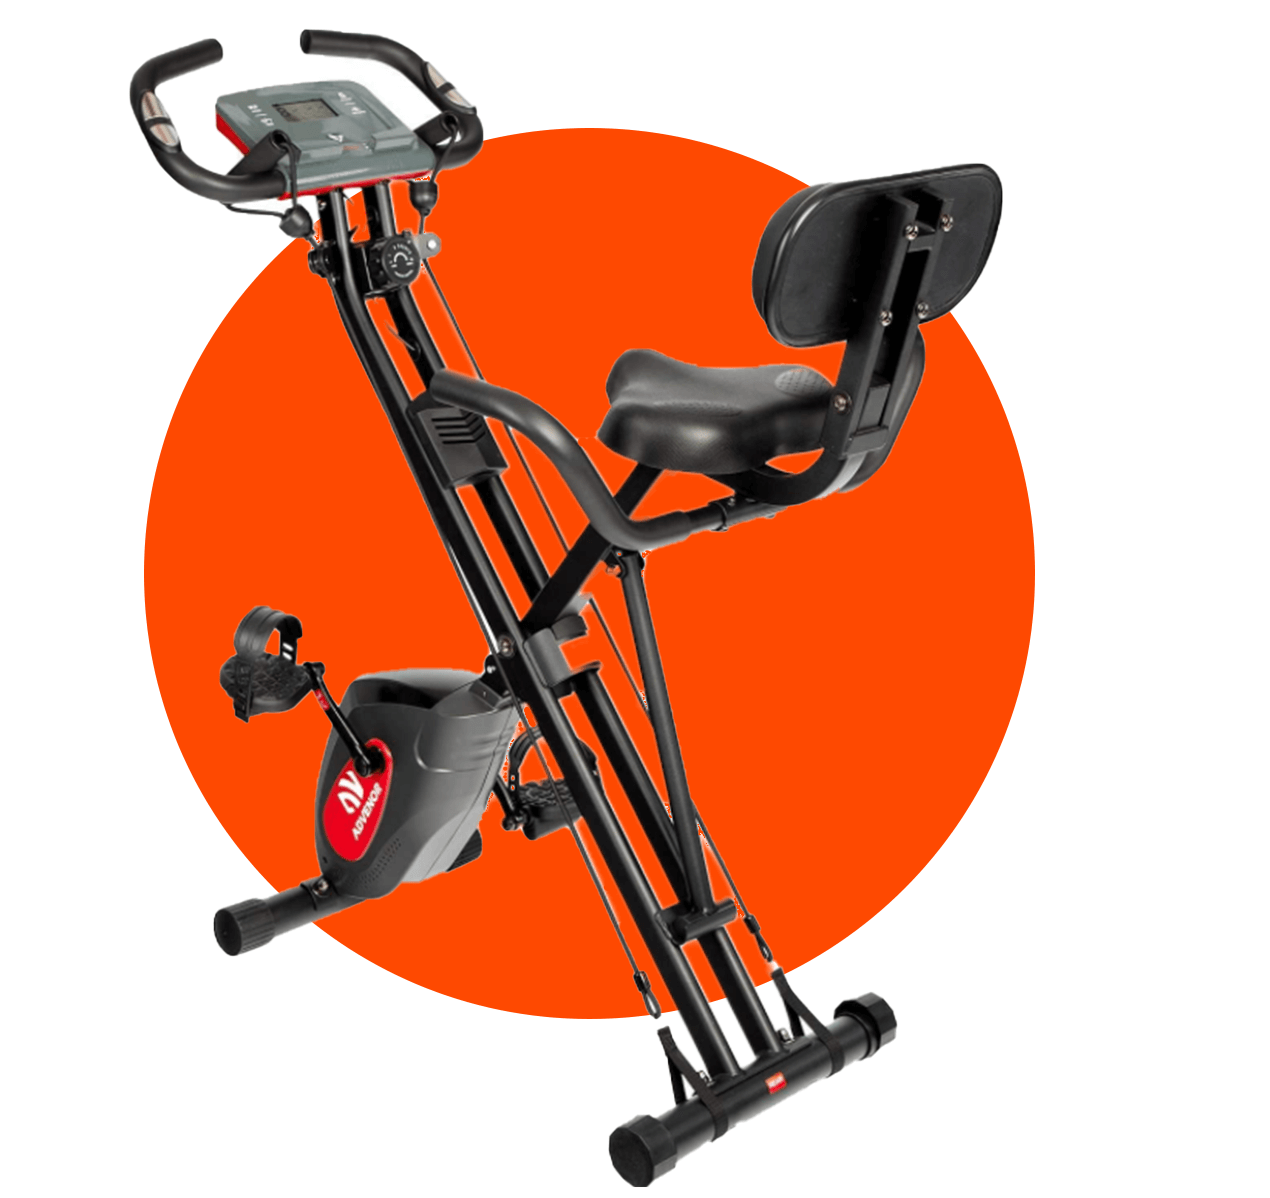 ADVENOR Exercise Bike Magnetic Bike is a great choice for a folded bike with backrest